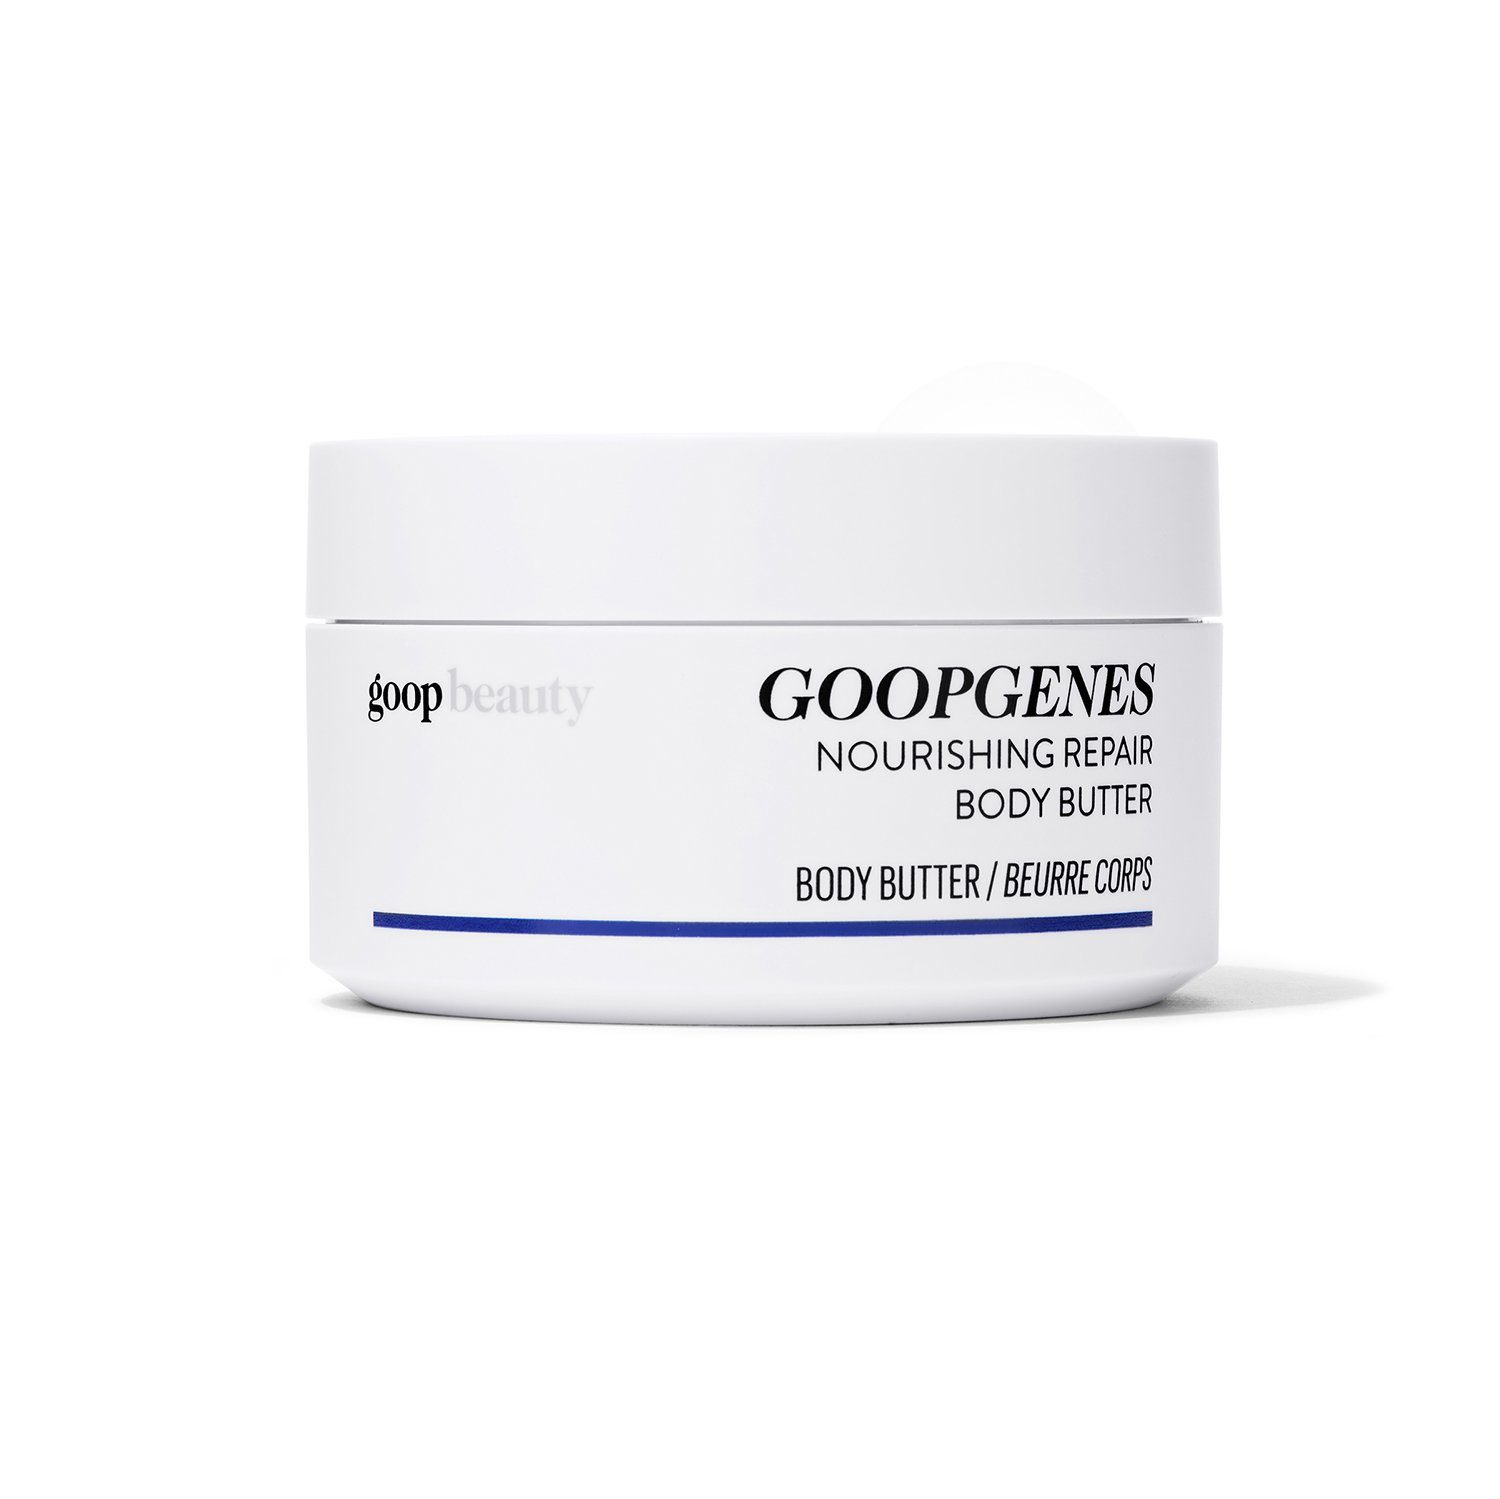 gifts-for-foodies-GOOP-Goopgenes-body-butter